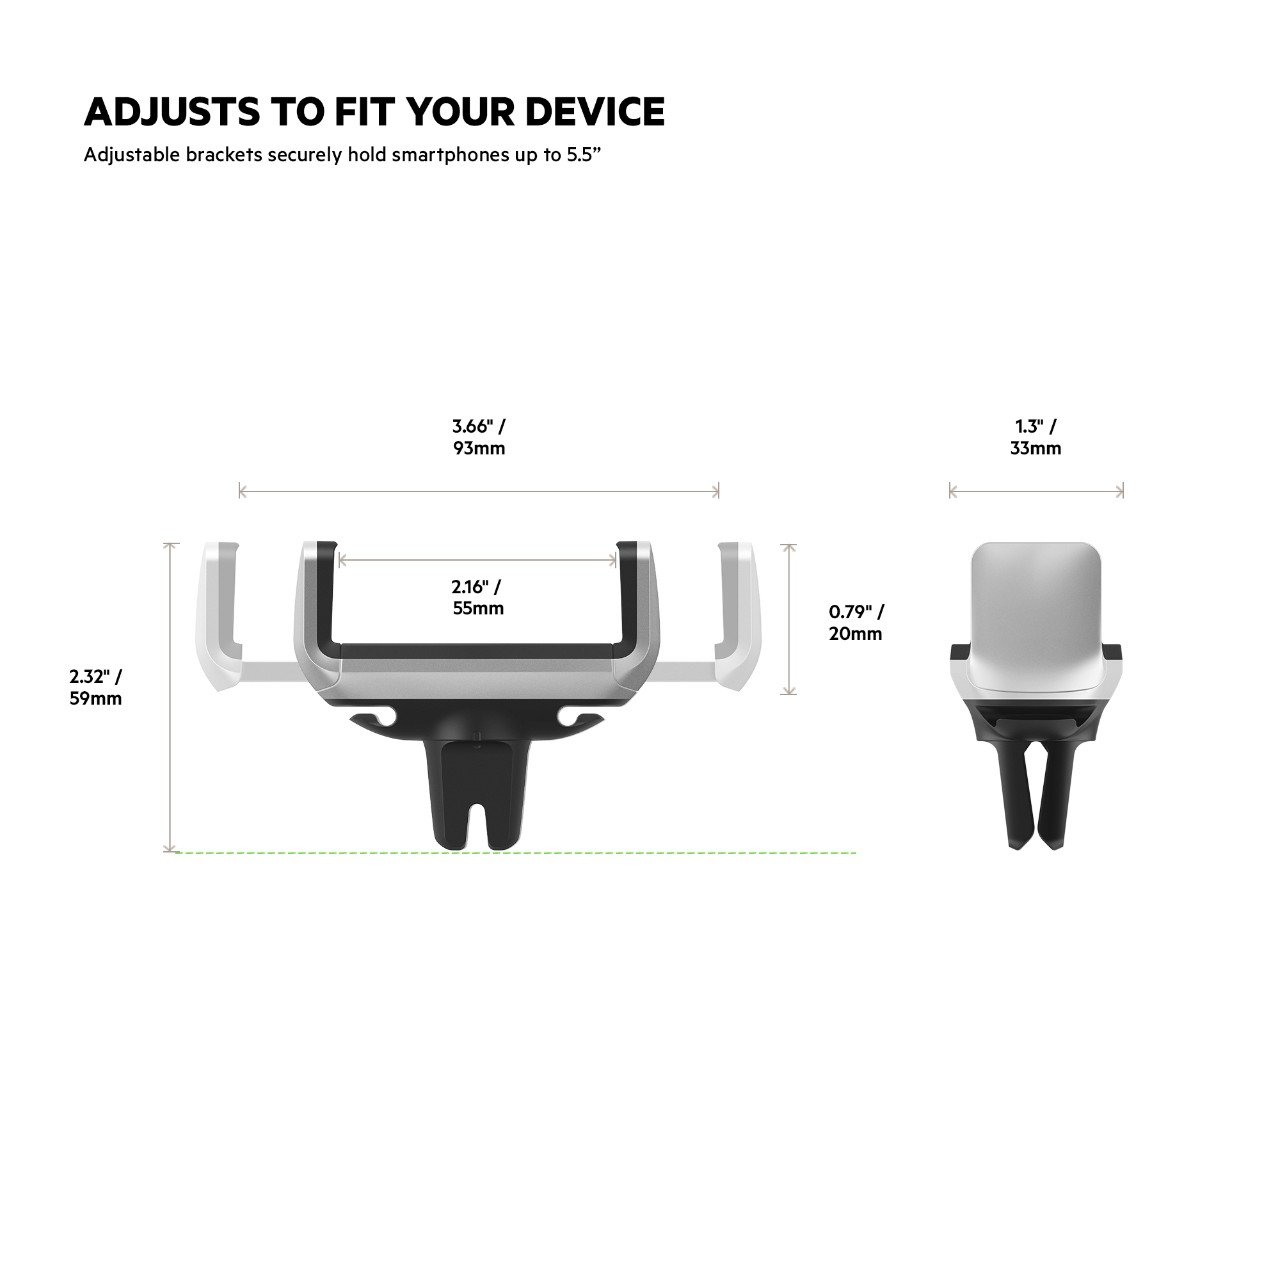 Belkin F7U017bt Universal Car Vent Mount for iPhone, Samsung Galaxy and Most Smartphones up to 5.5 inches (Latest Model) by Belkin (Image #4)